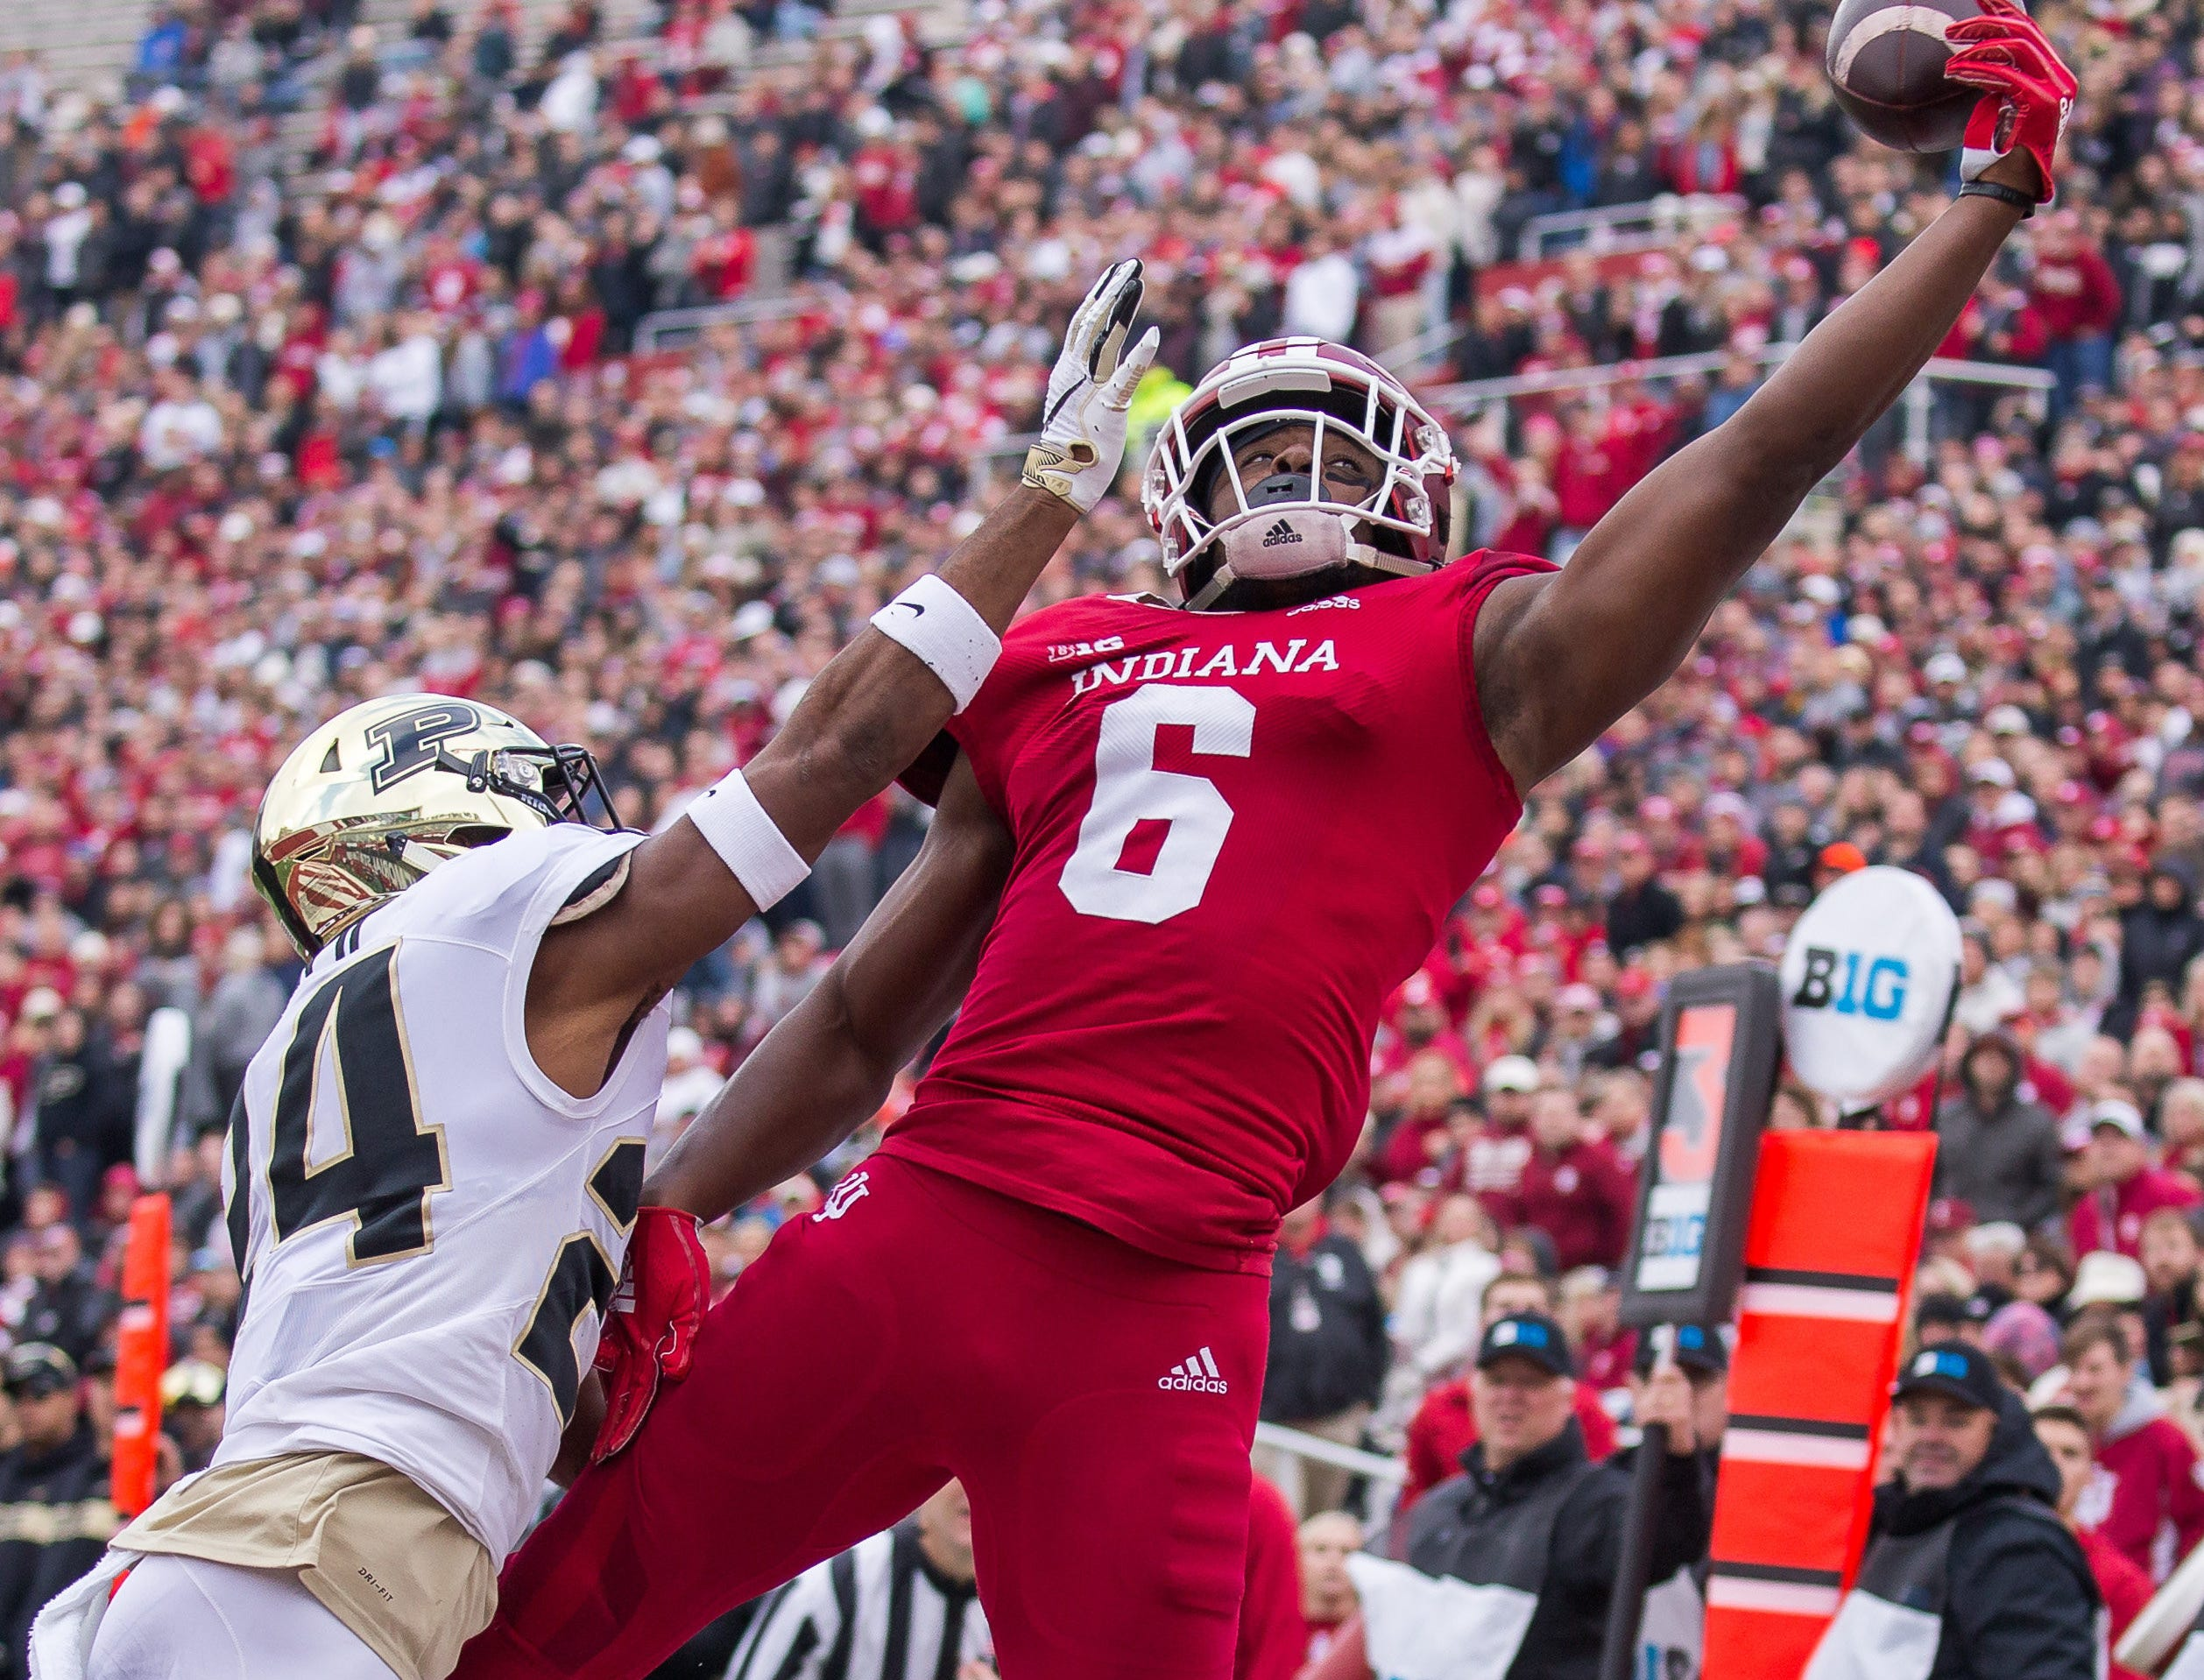 Indiana Hoosiers wide receiver Donavan Hale (6) attempts to catch a pass against Purdue Boilermakers cornerback Tim Cason (24) in the second quarter at Memorial Stadium.